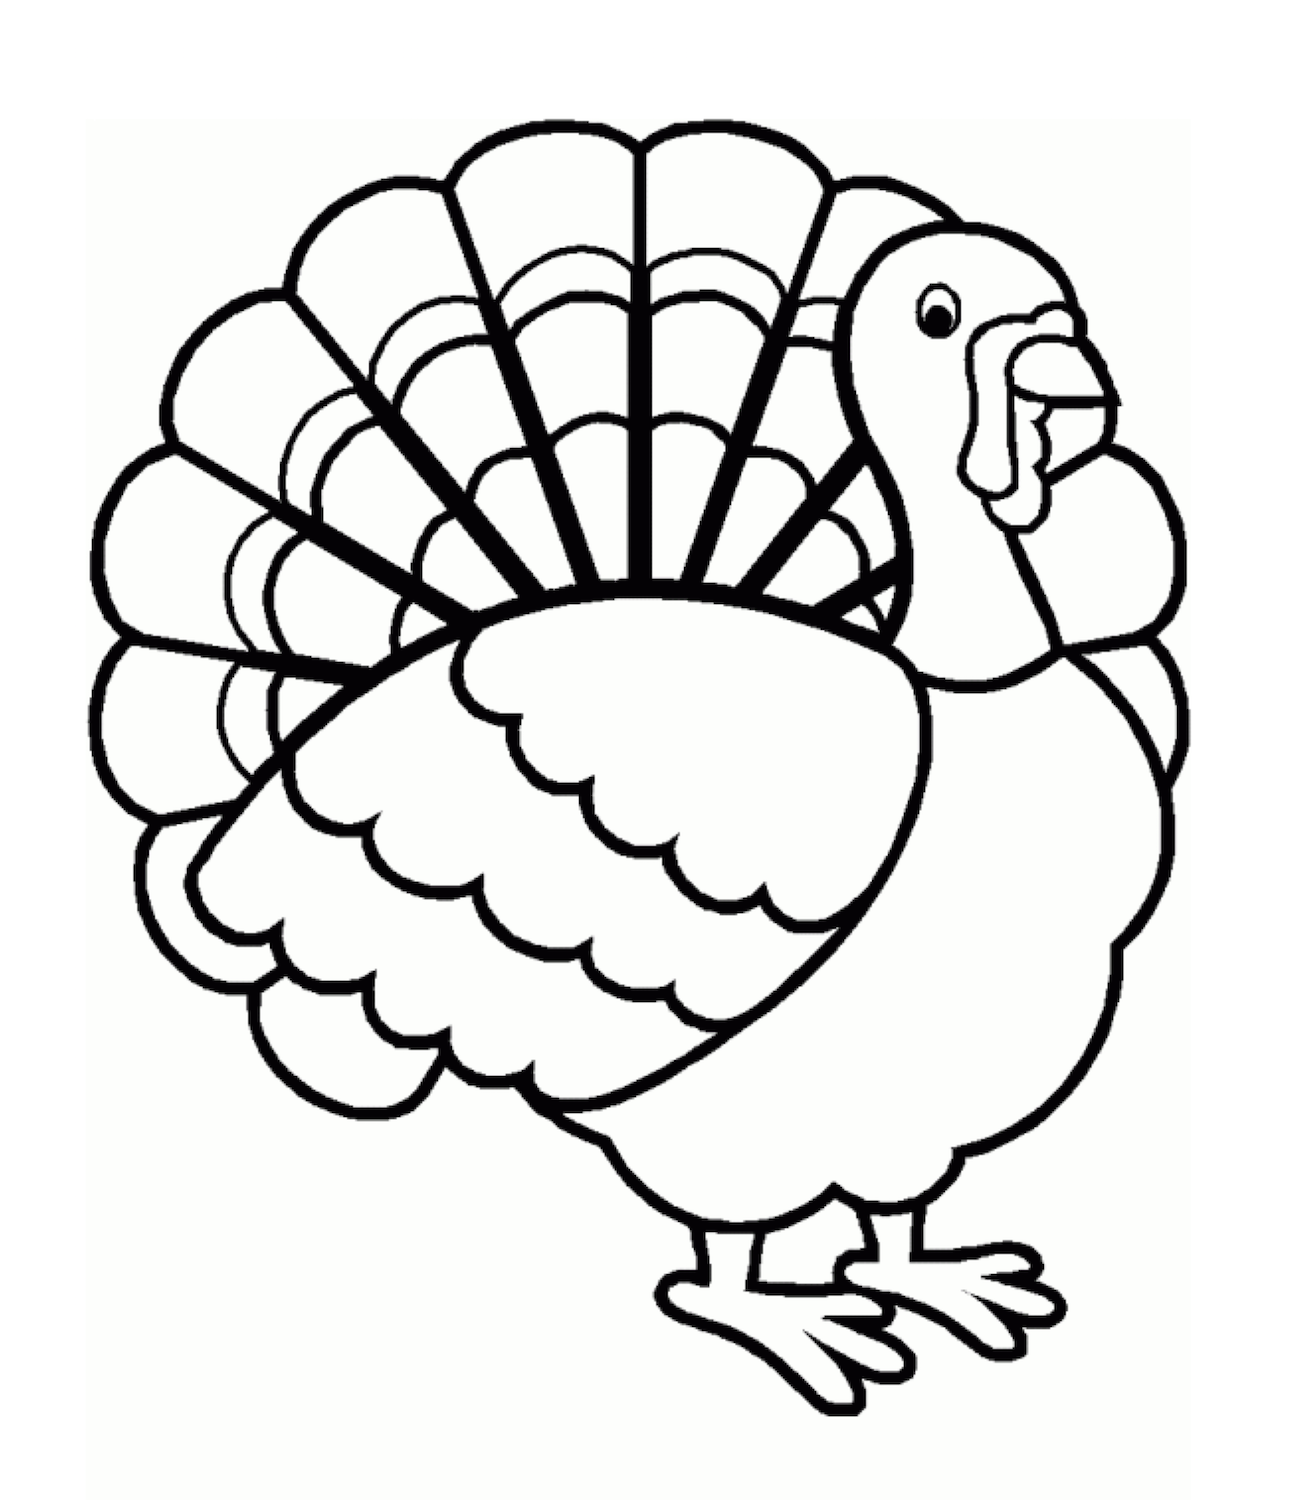 Thanksgiving Coloring Pages Turkey Coloring Pages Thanksgiving Coloring Pages Thanksgiving Math Coloring Sheets